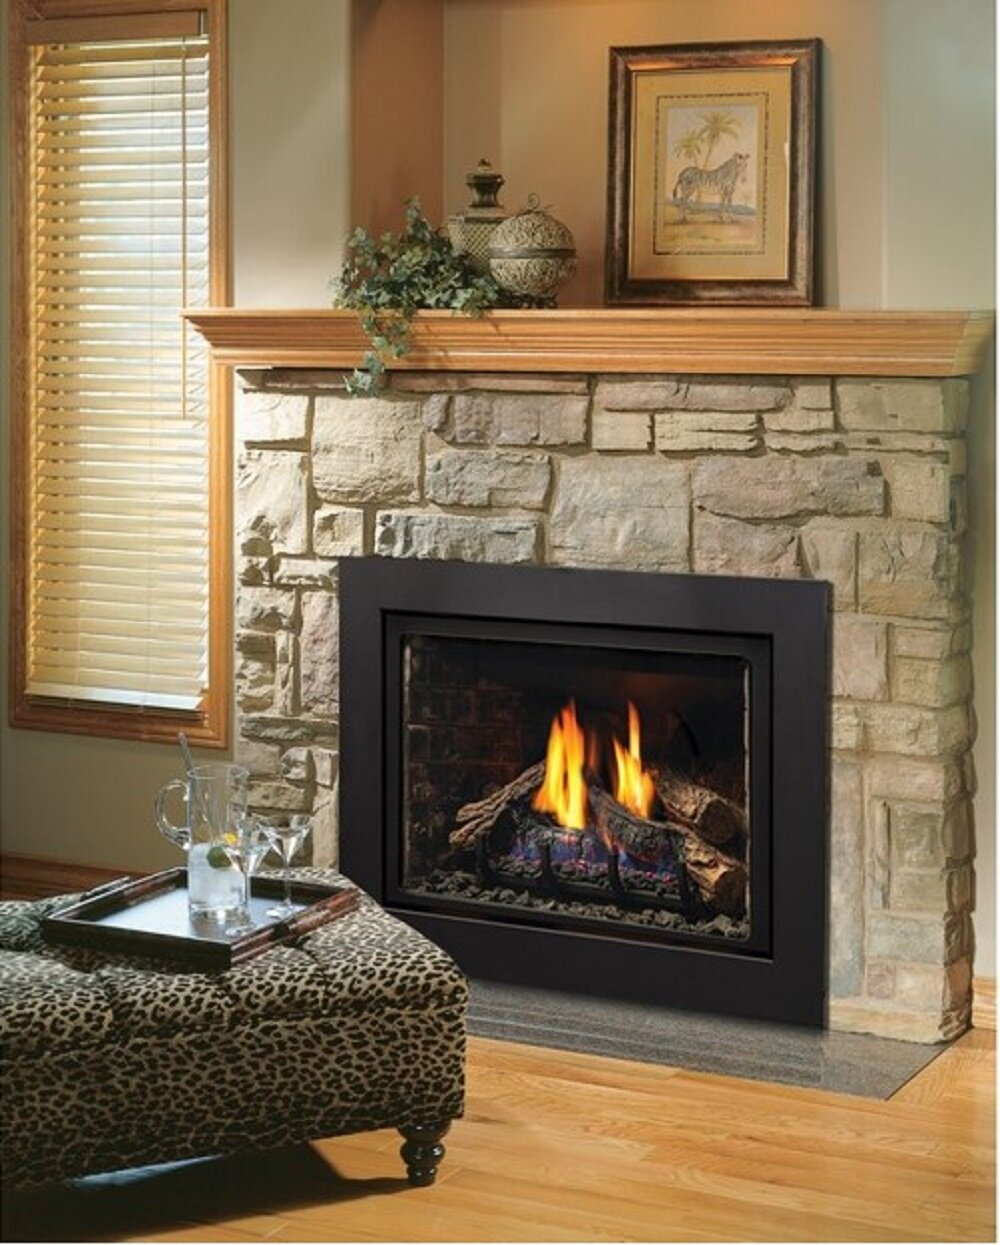 14 Inches To 15 Inches Gas Fireplace Inserts Logs You Ll Love In 2021 Wayfair